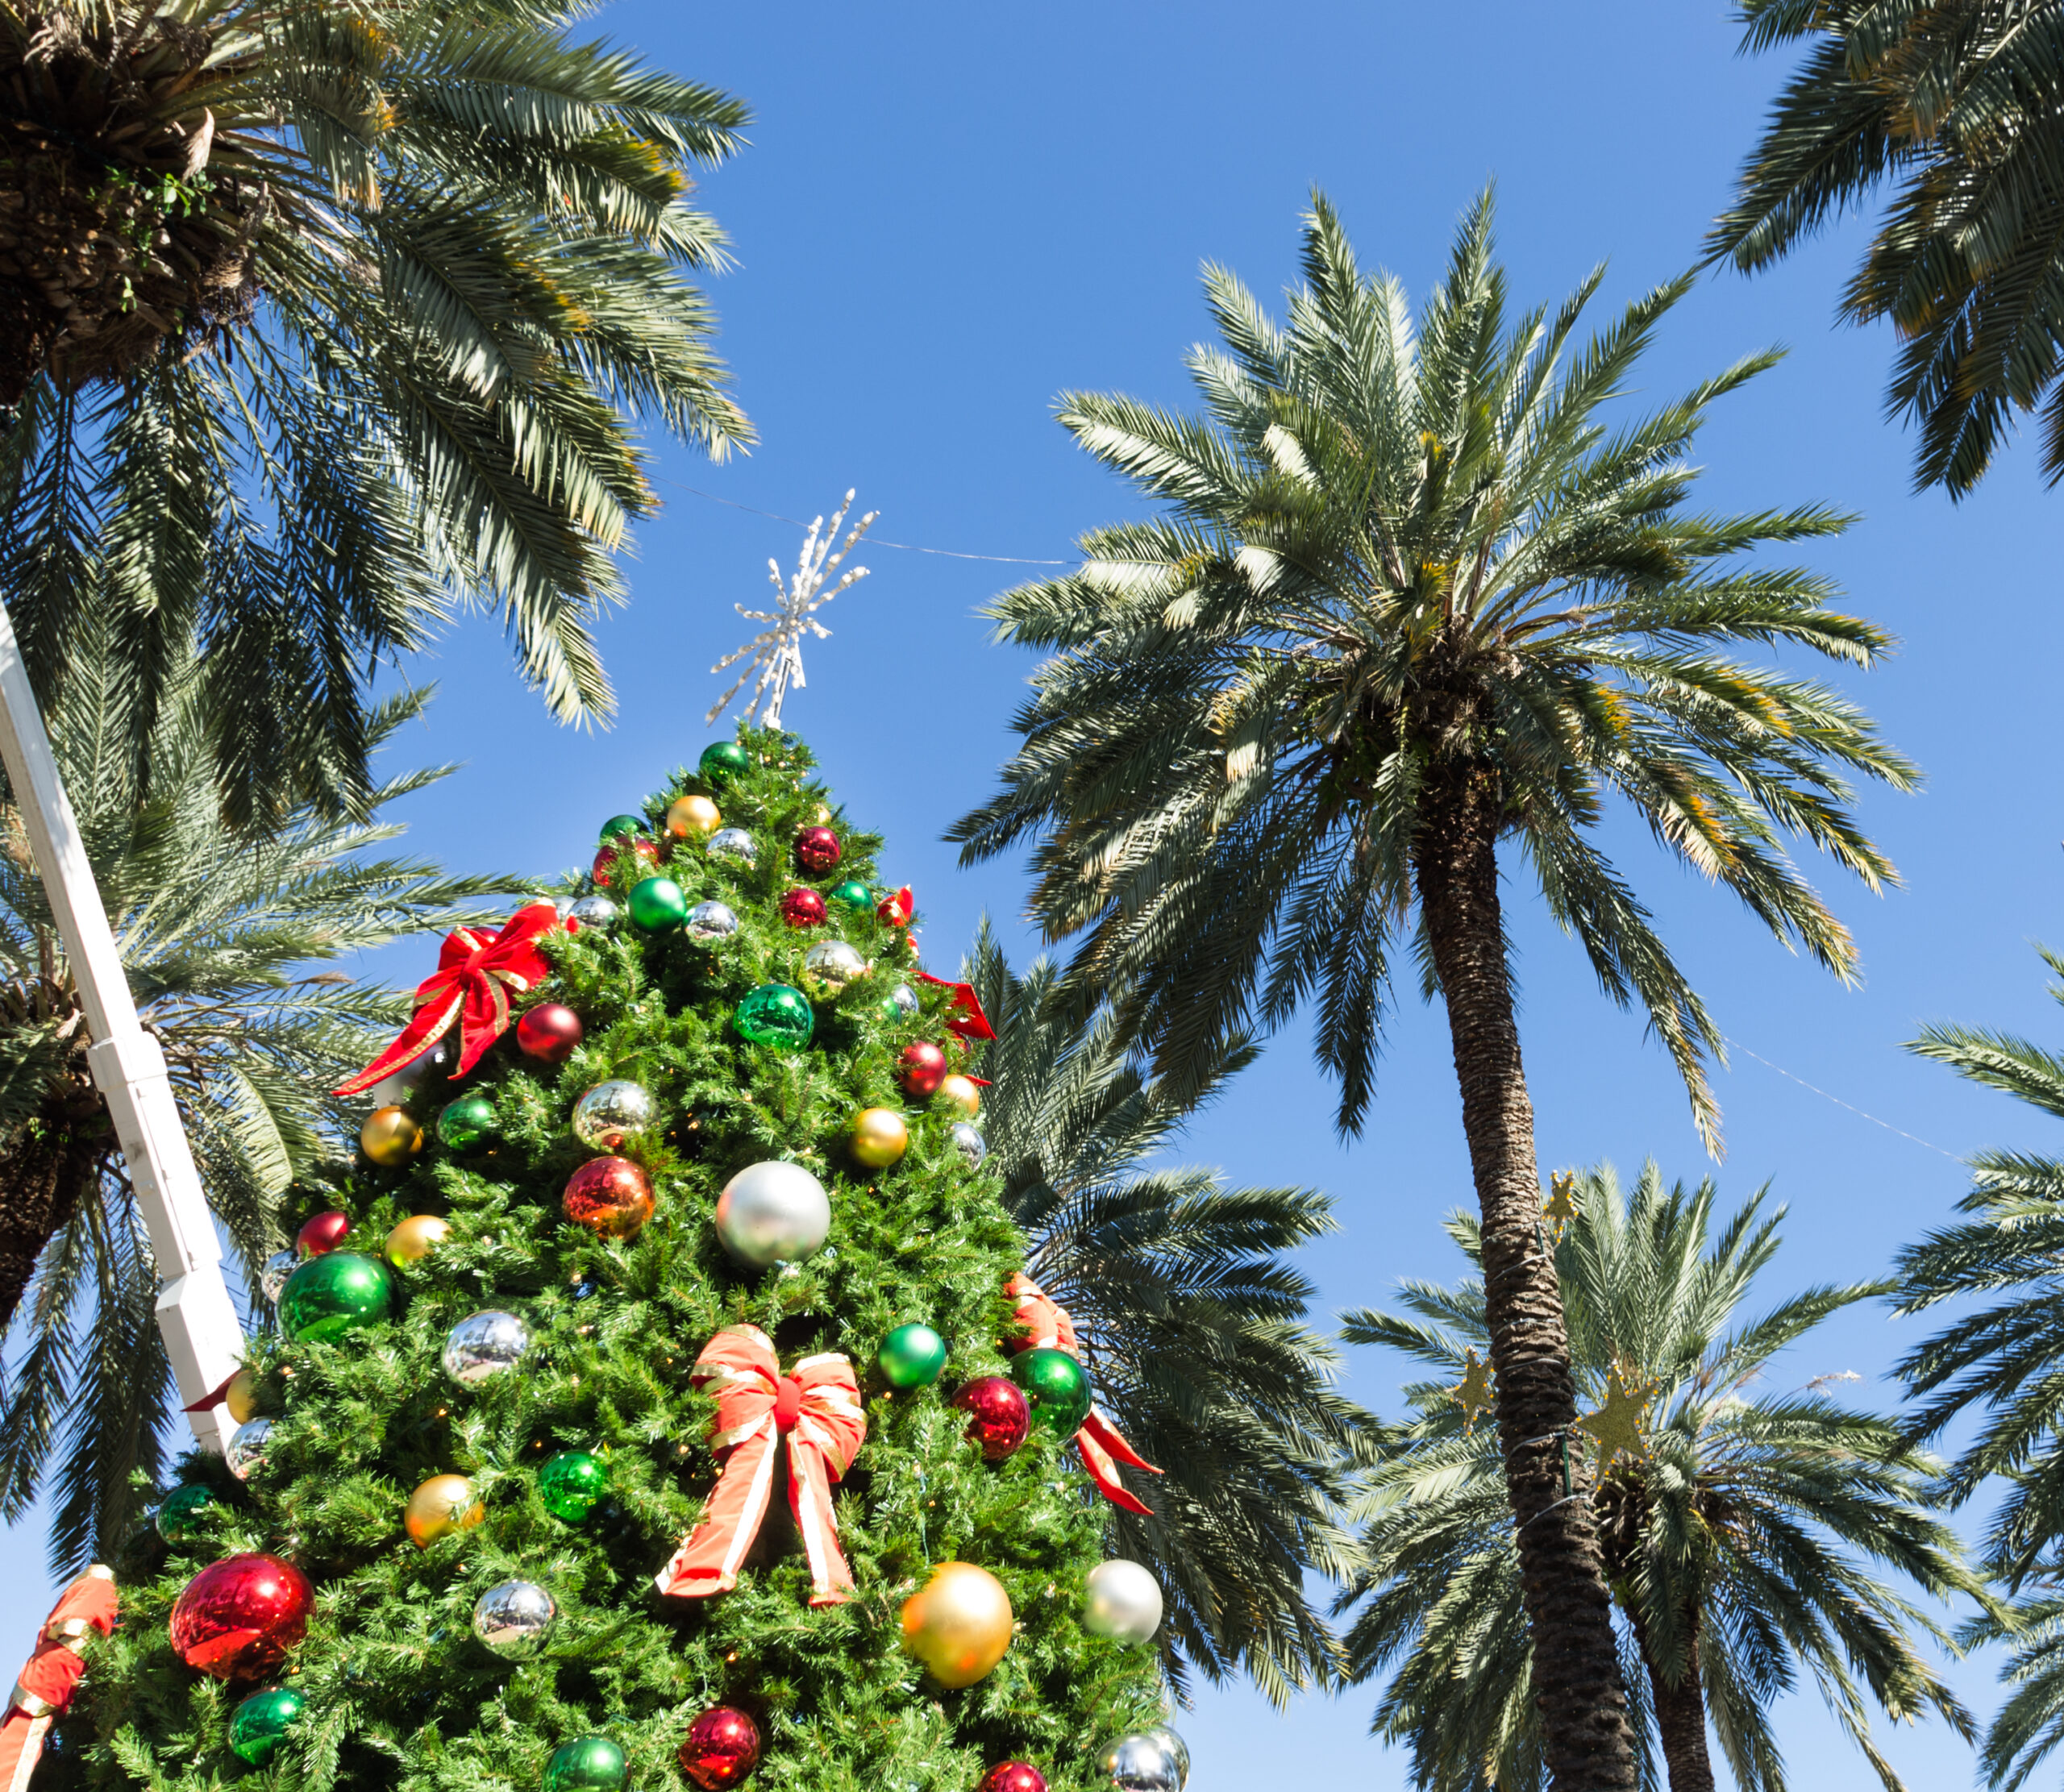 Winter is Coming! 5 Fun Winter Activities in South Florida